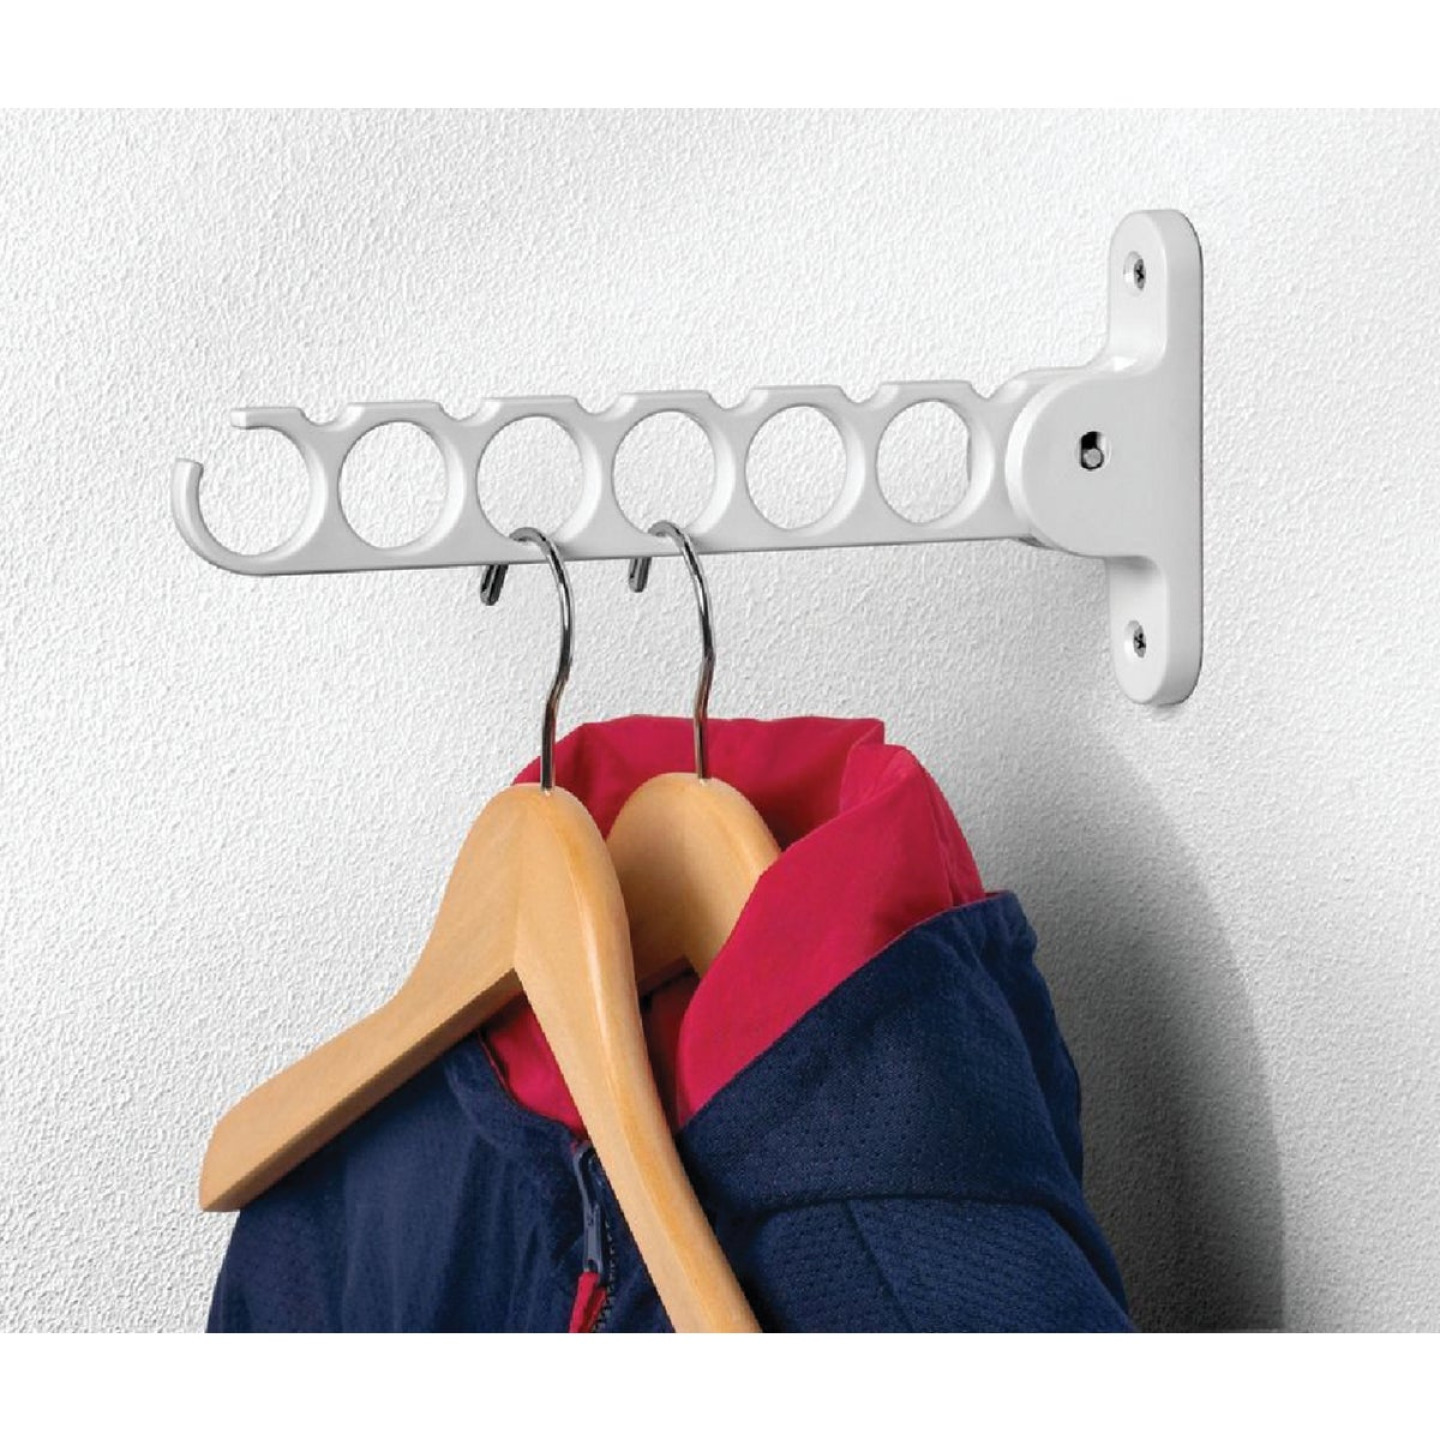 Spectrum White Wall Mount Hanger Holder Image 1